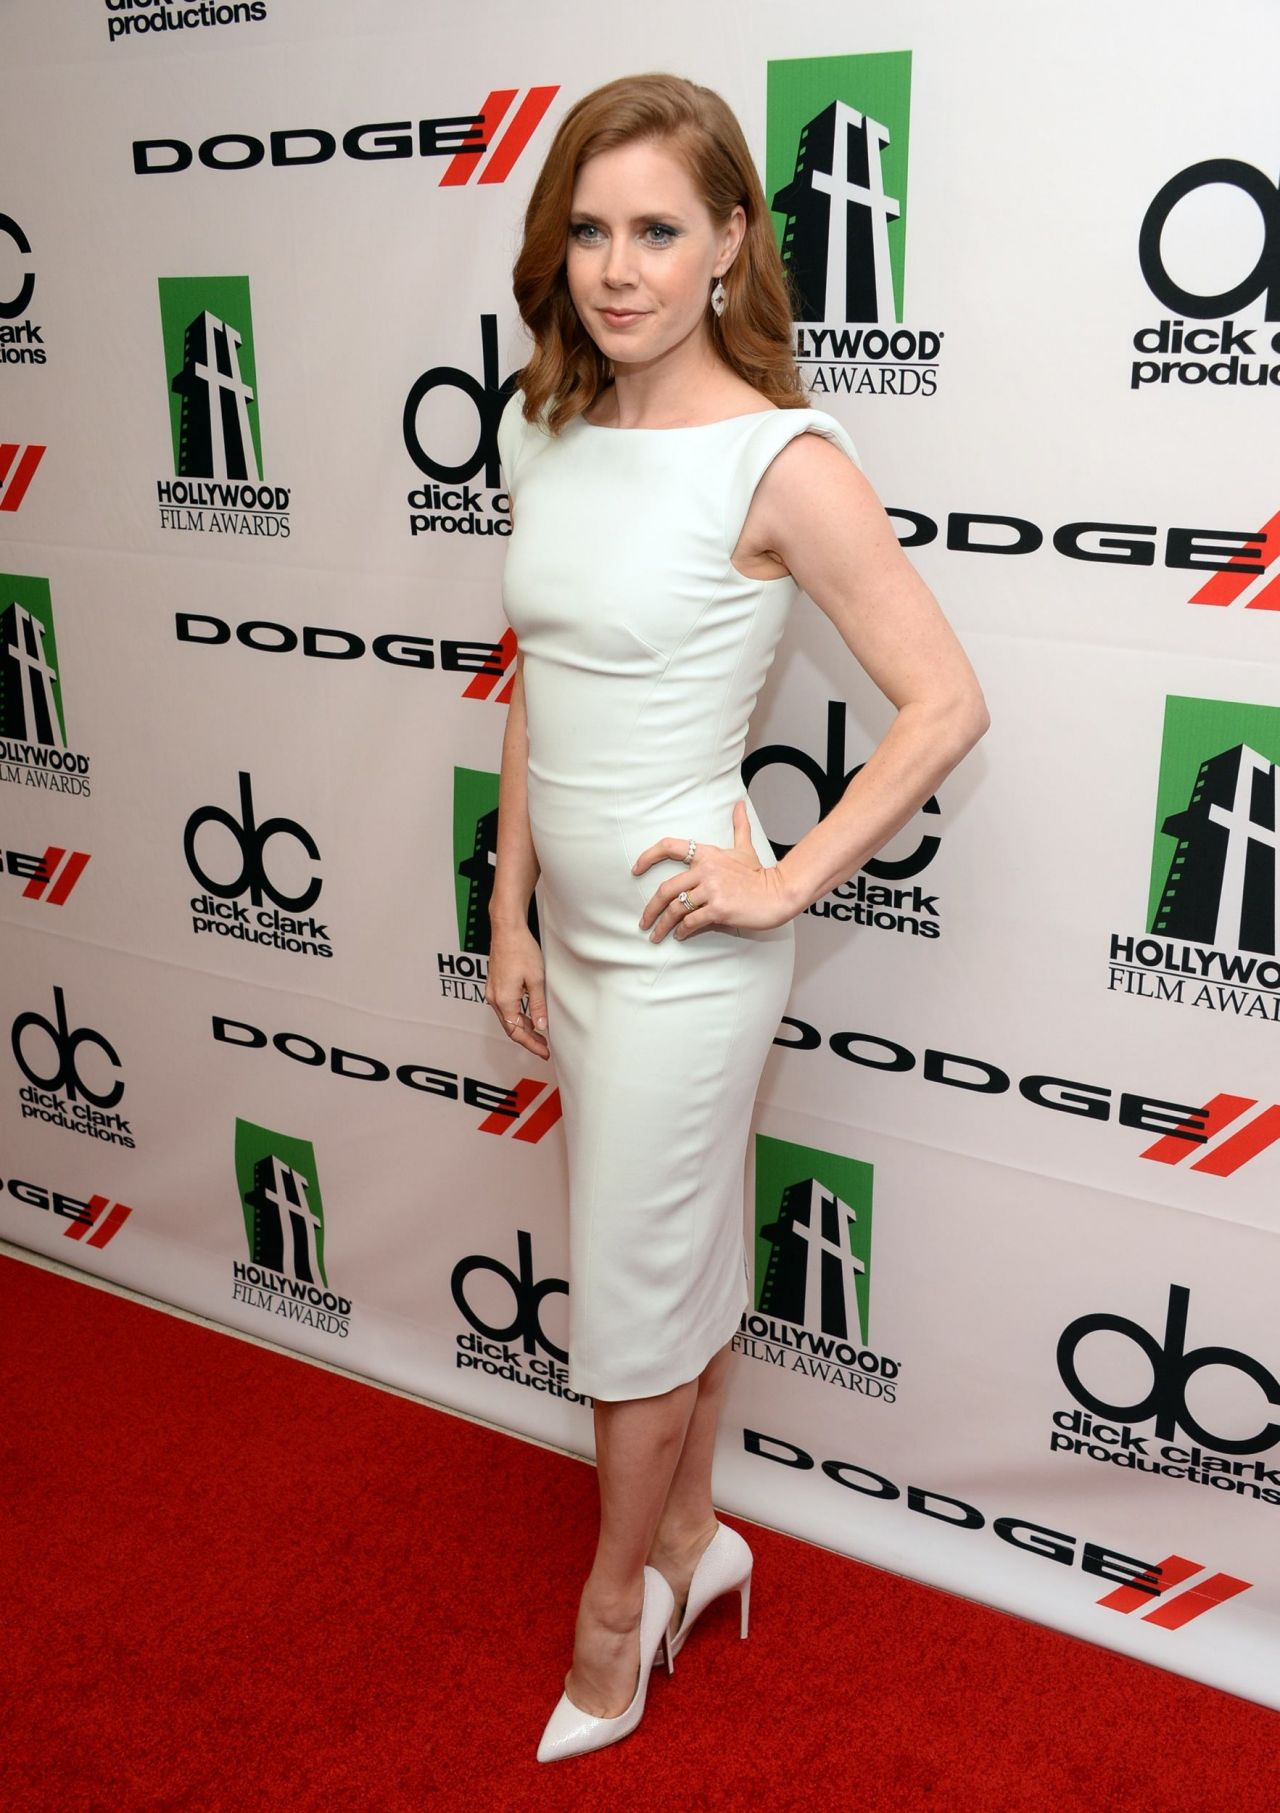 Amy Adams Red Carpet Photos - 17th Annual Hollywood Film Awards